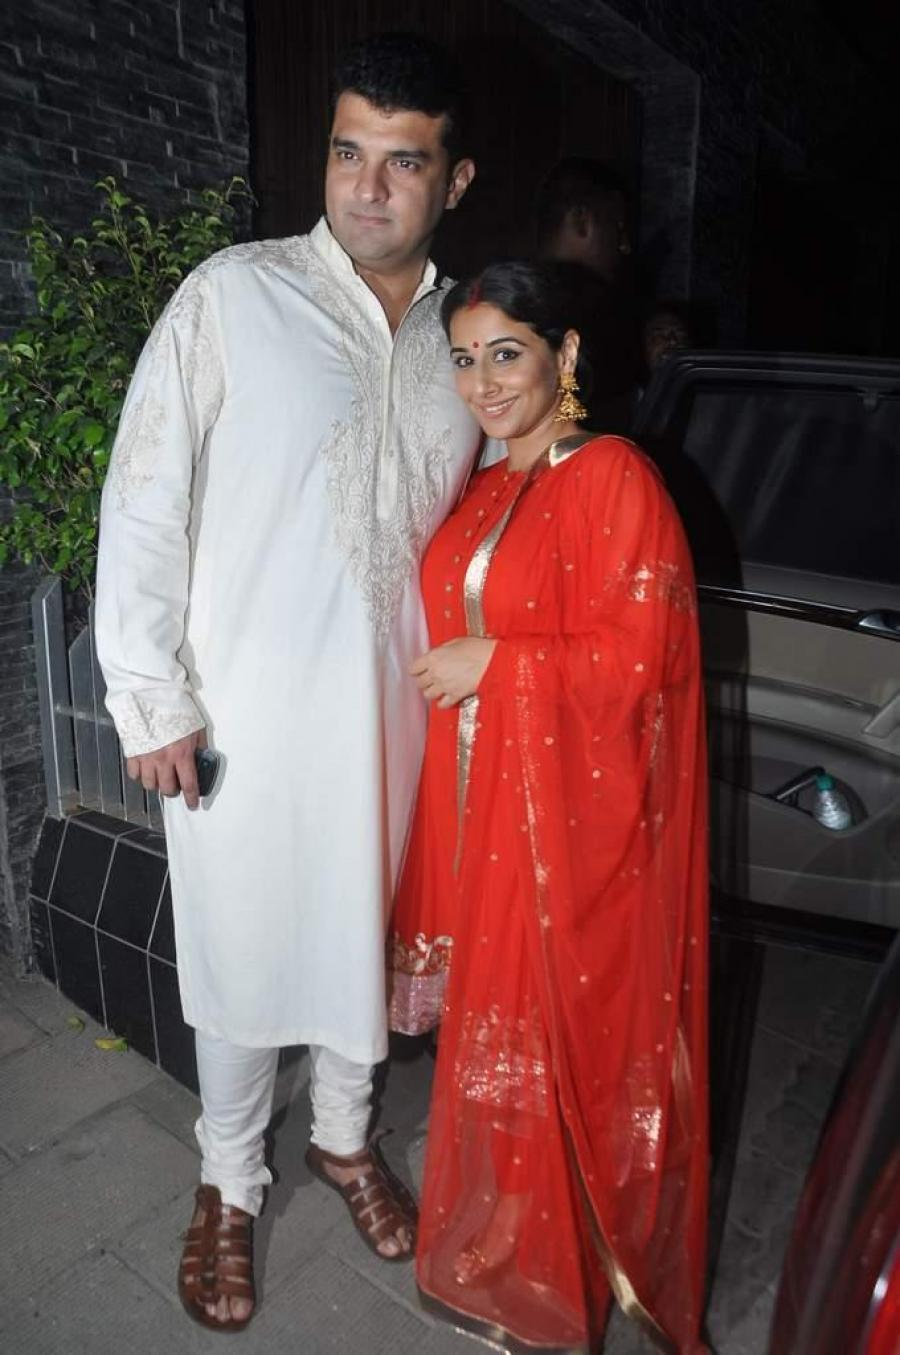 Vidya Balan Family Photos At Diwali Party In Red Dress